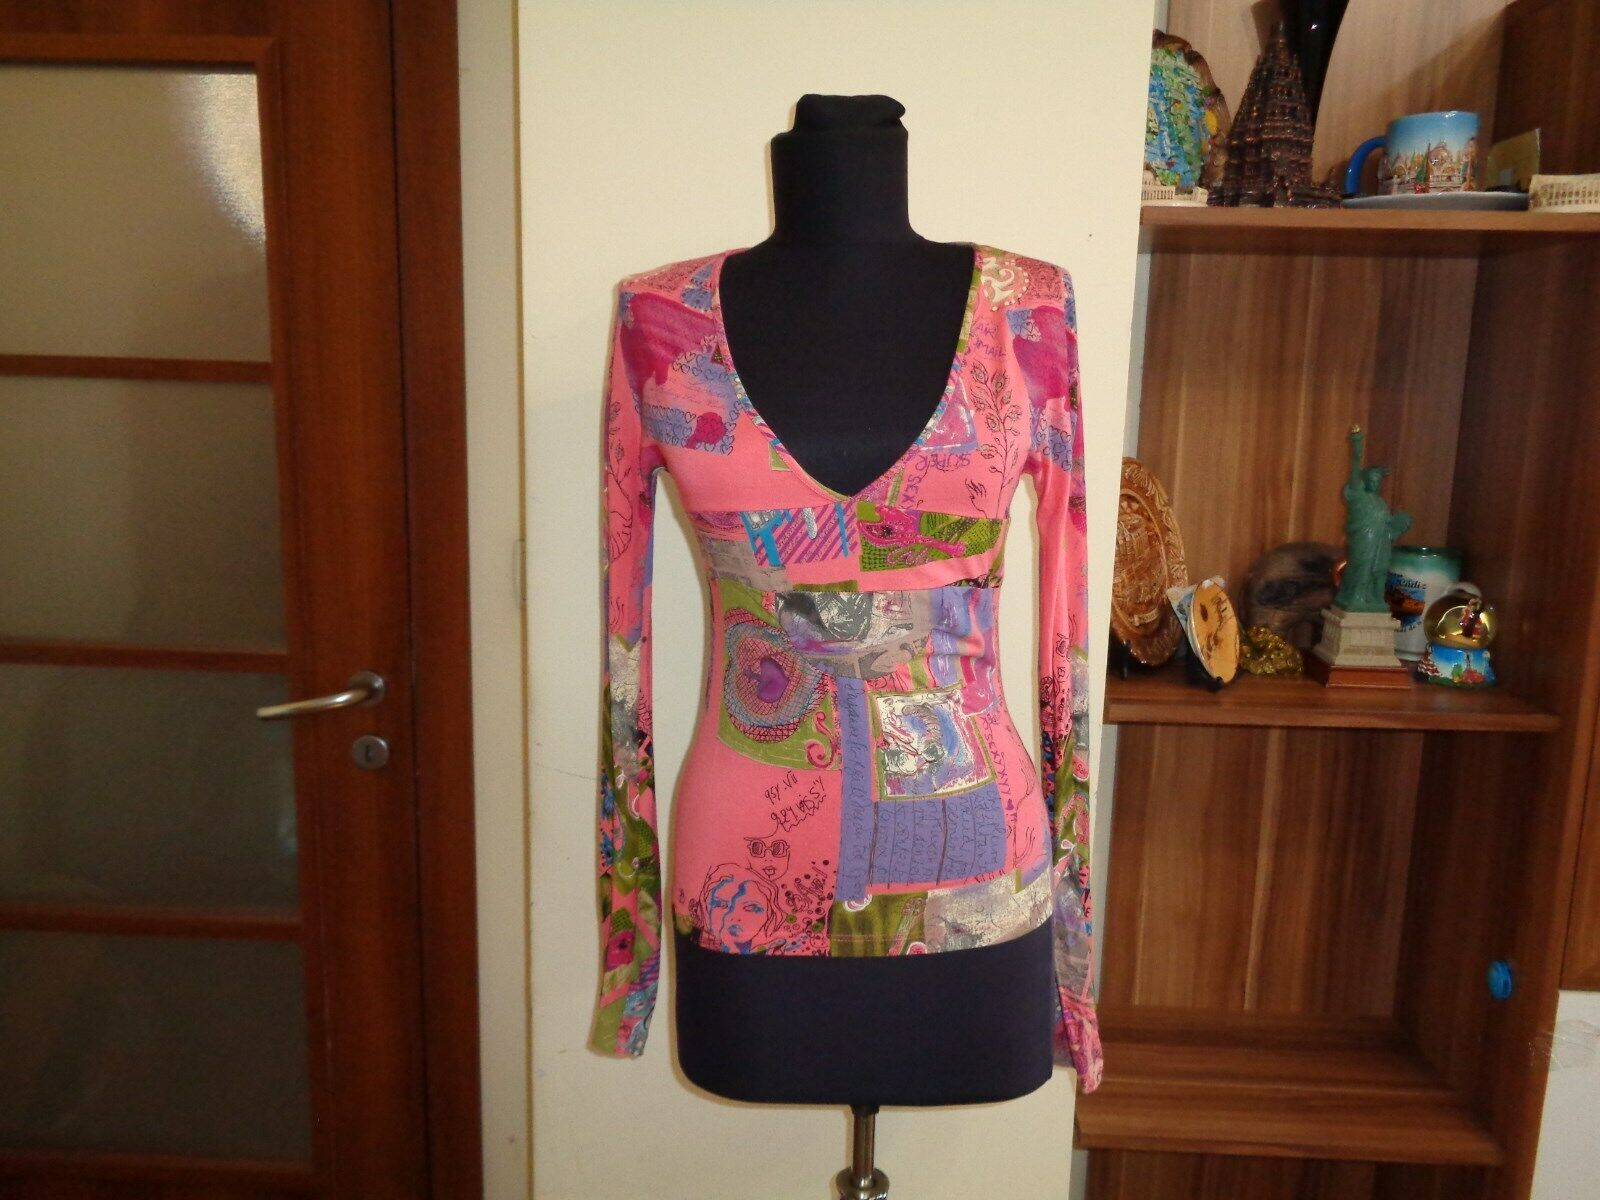 CHRISTIAN LACROIX JEANS MULTICOLGoldt STRETCH JERSEY COMICS ABSTRACT PRINT TOP